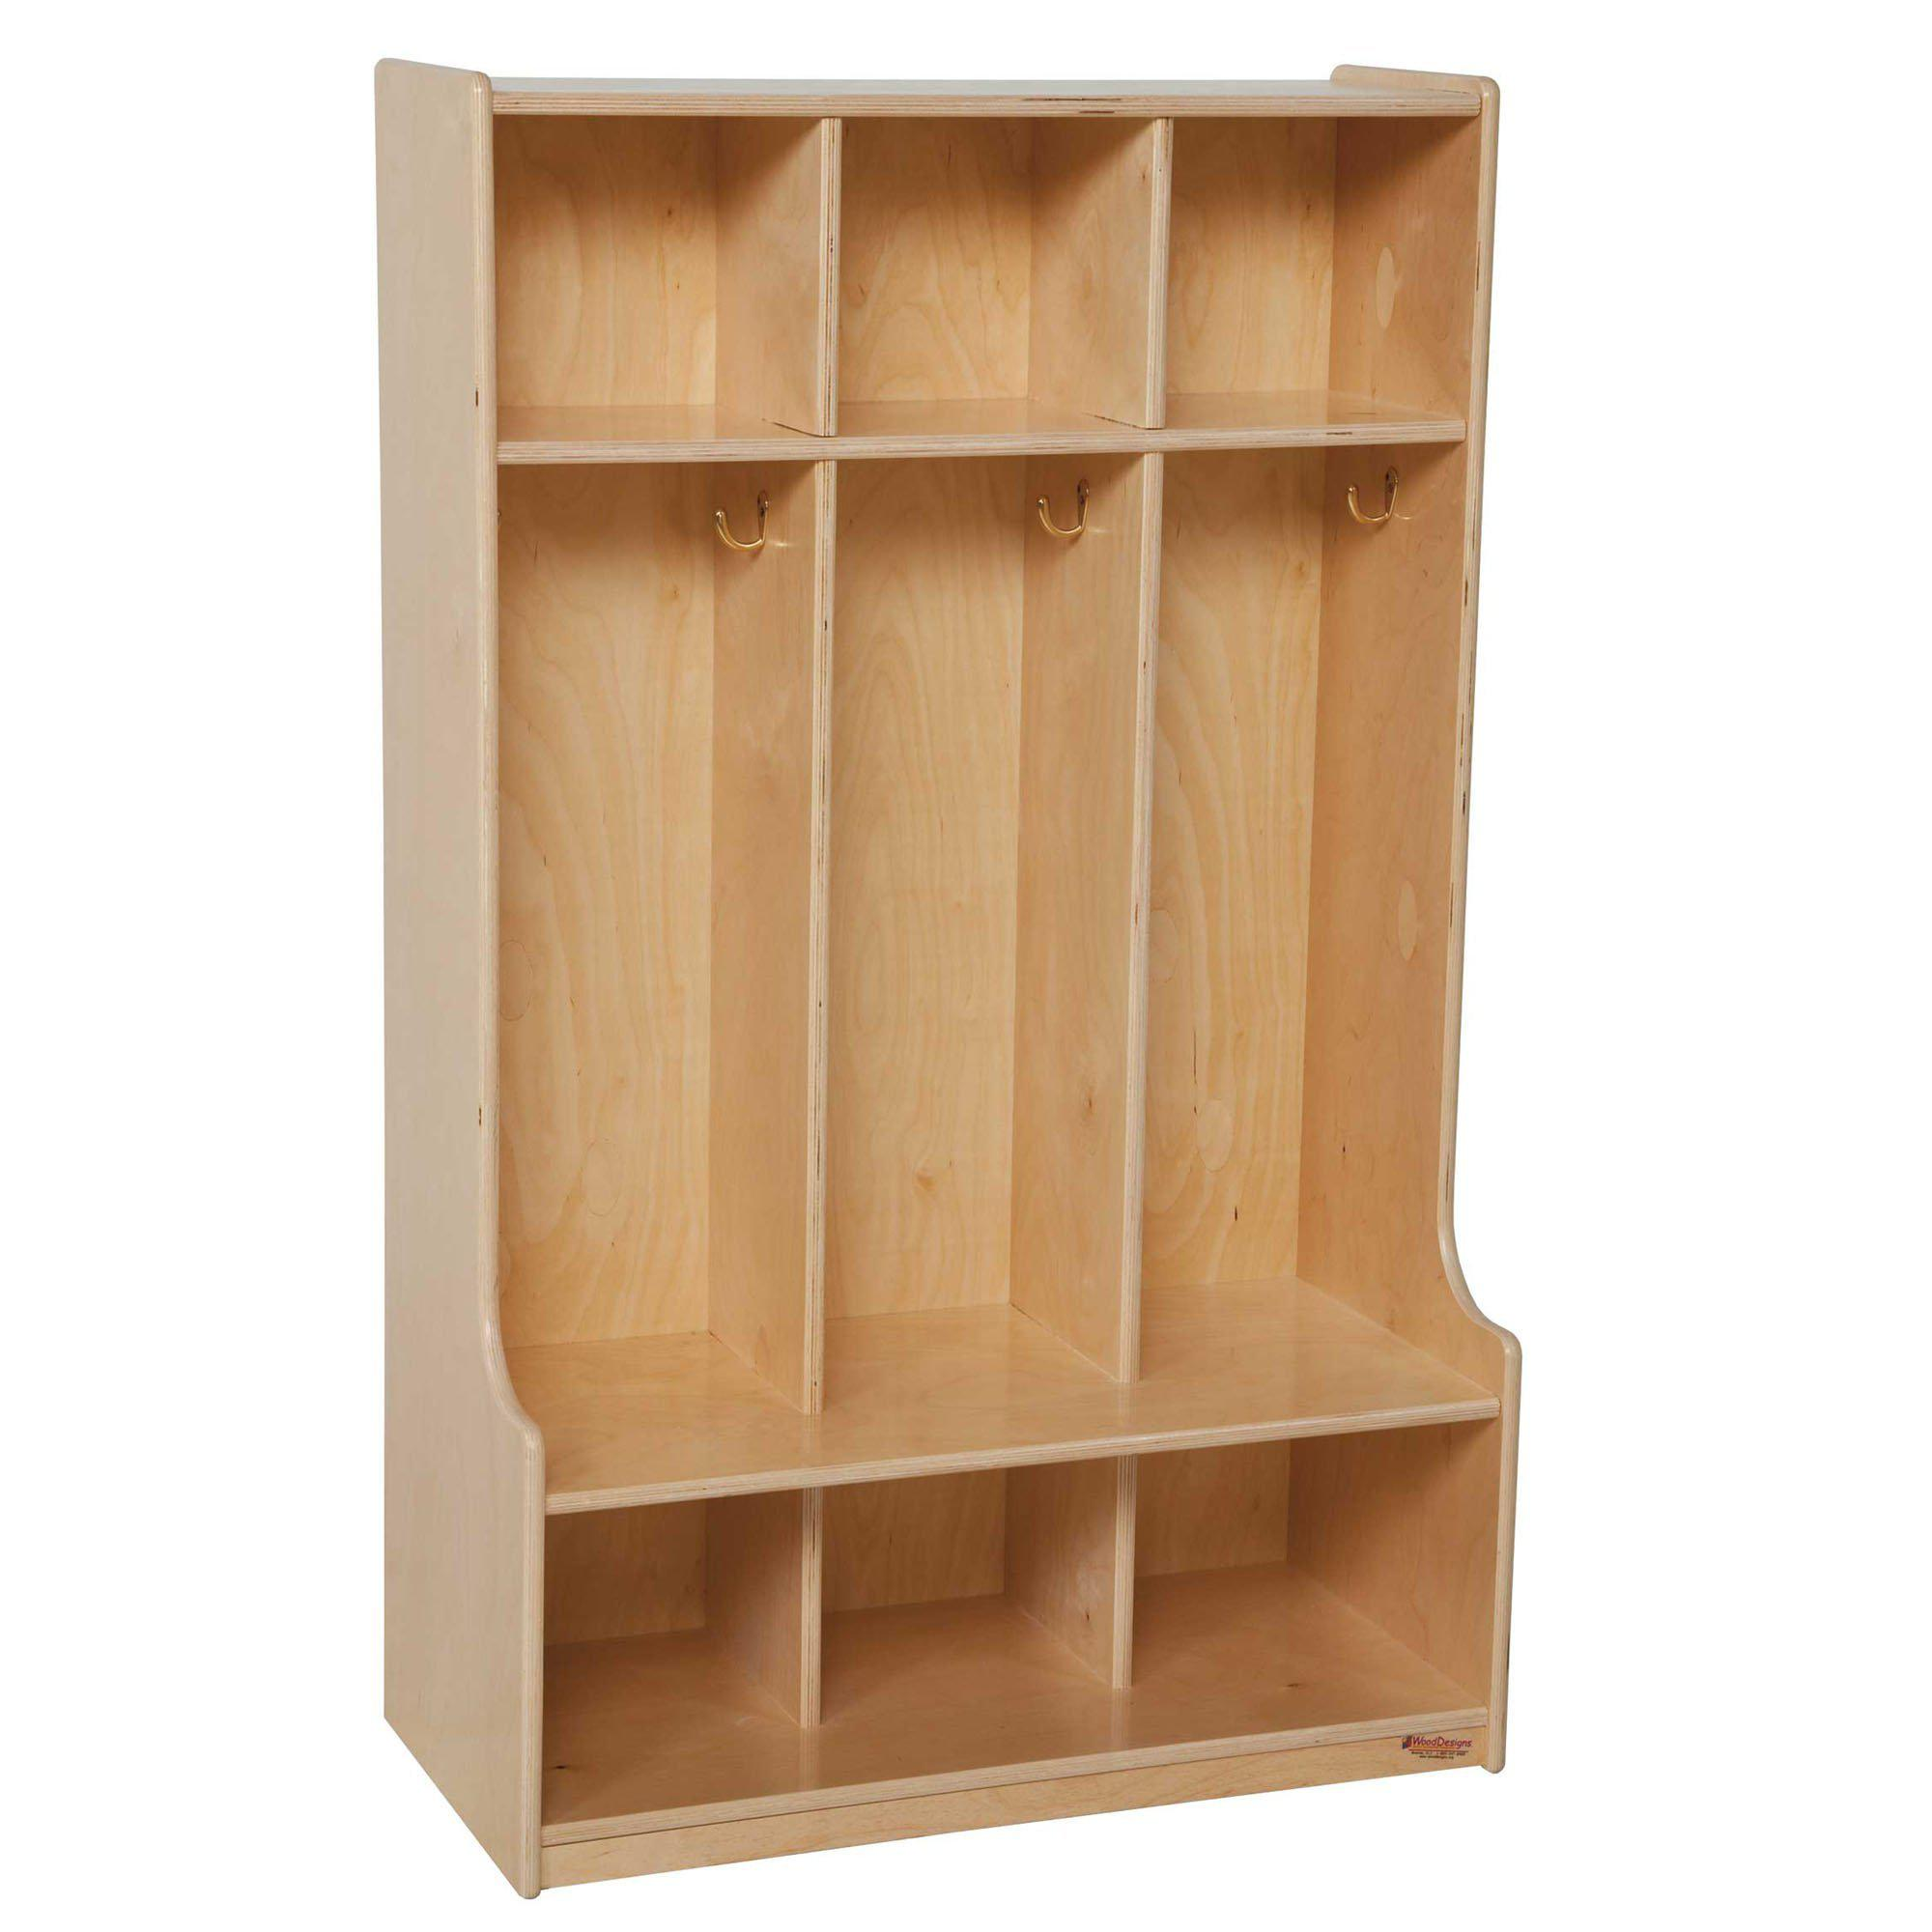 Wood Designs 3 Section Seat Locker